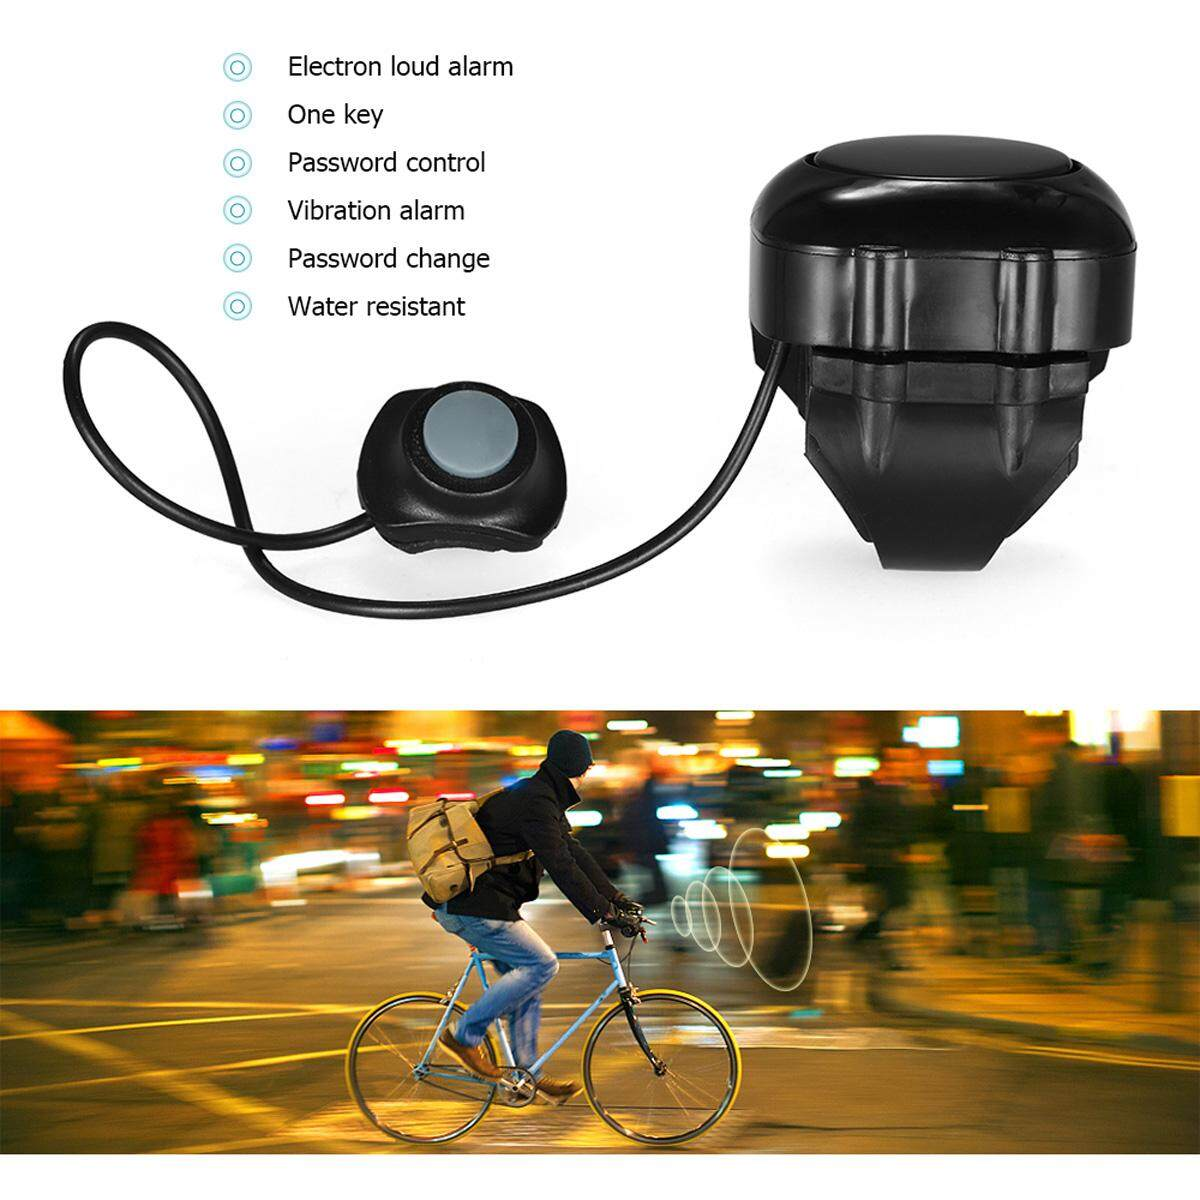 Sunding Cycling Bike Alert Bells Ring Loud, 3 Sound Electric Horn - Black